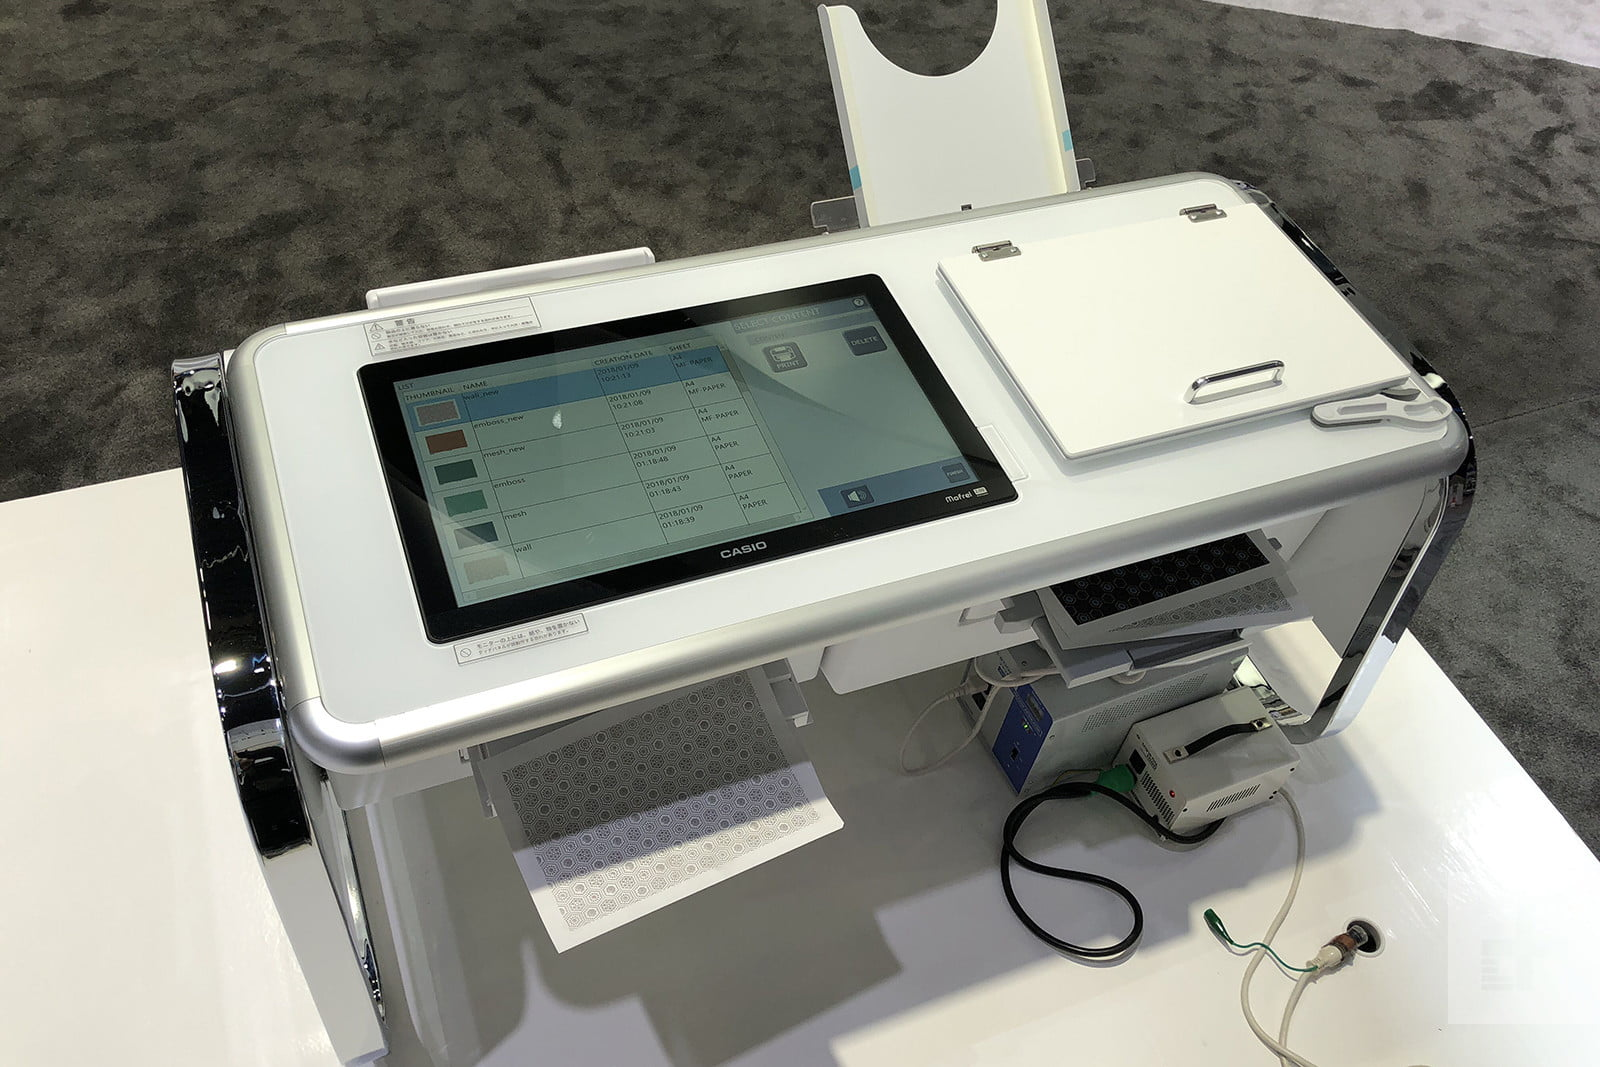 casio mofrel 25d printer ces2018 image uploaded from ios 7